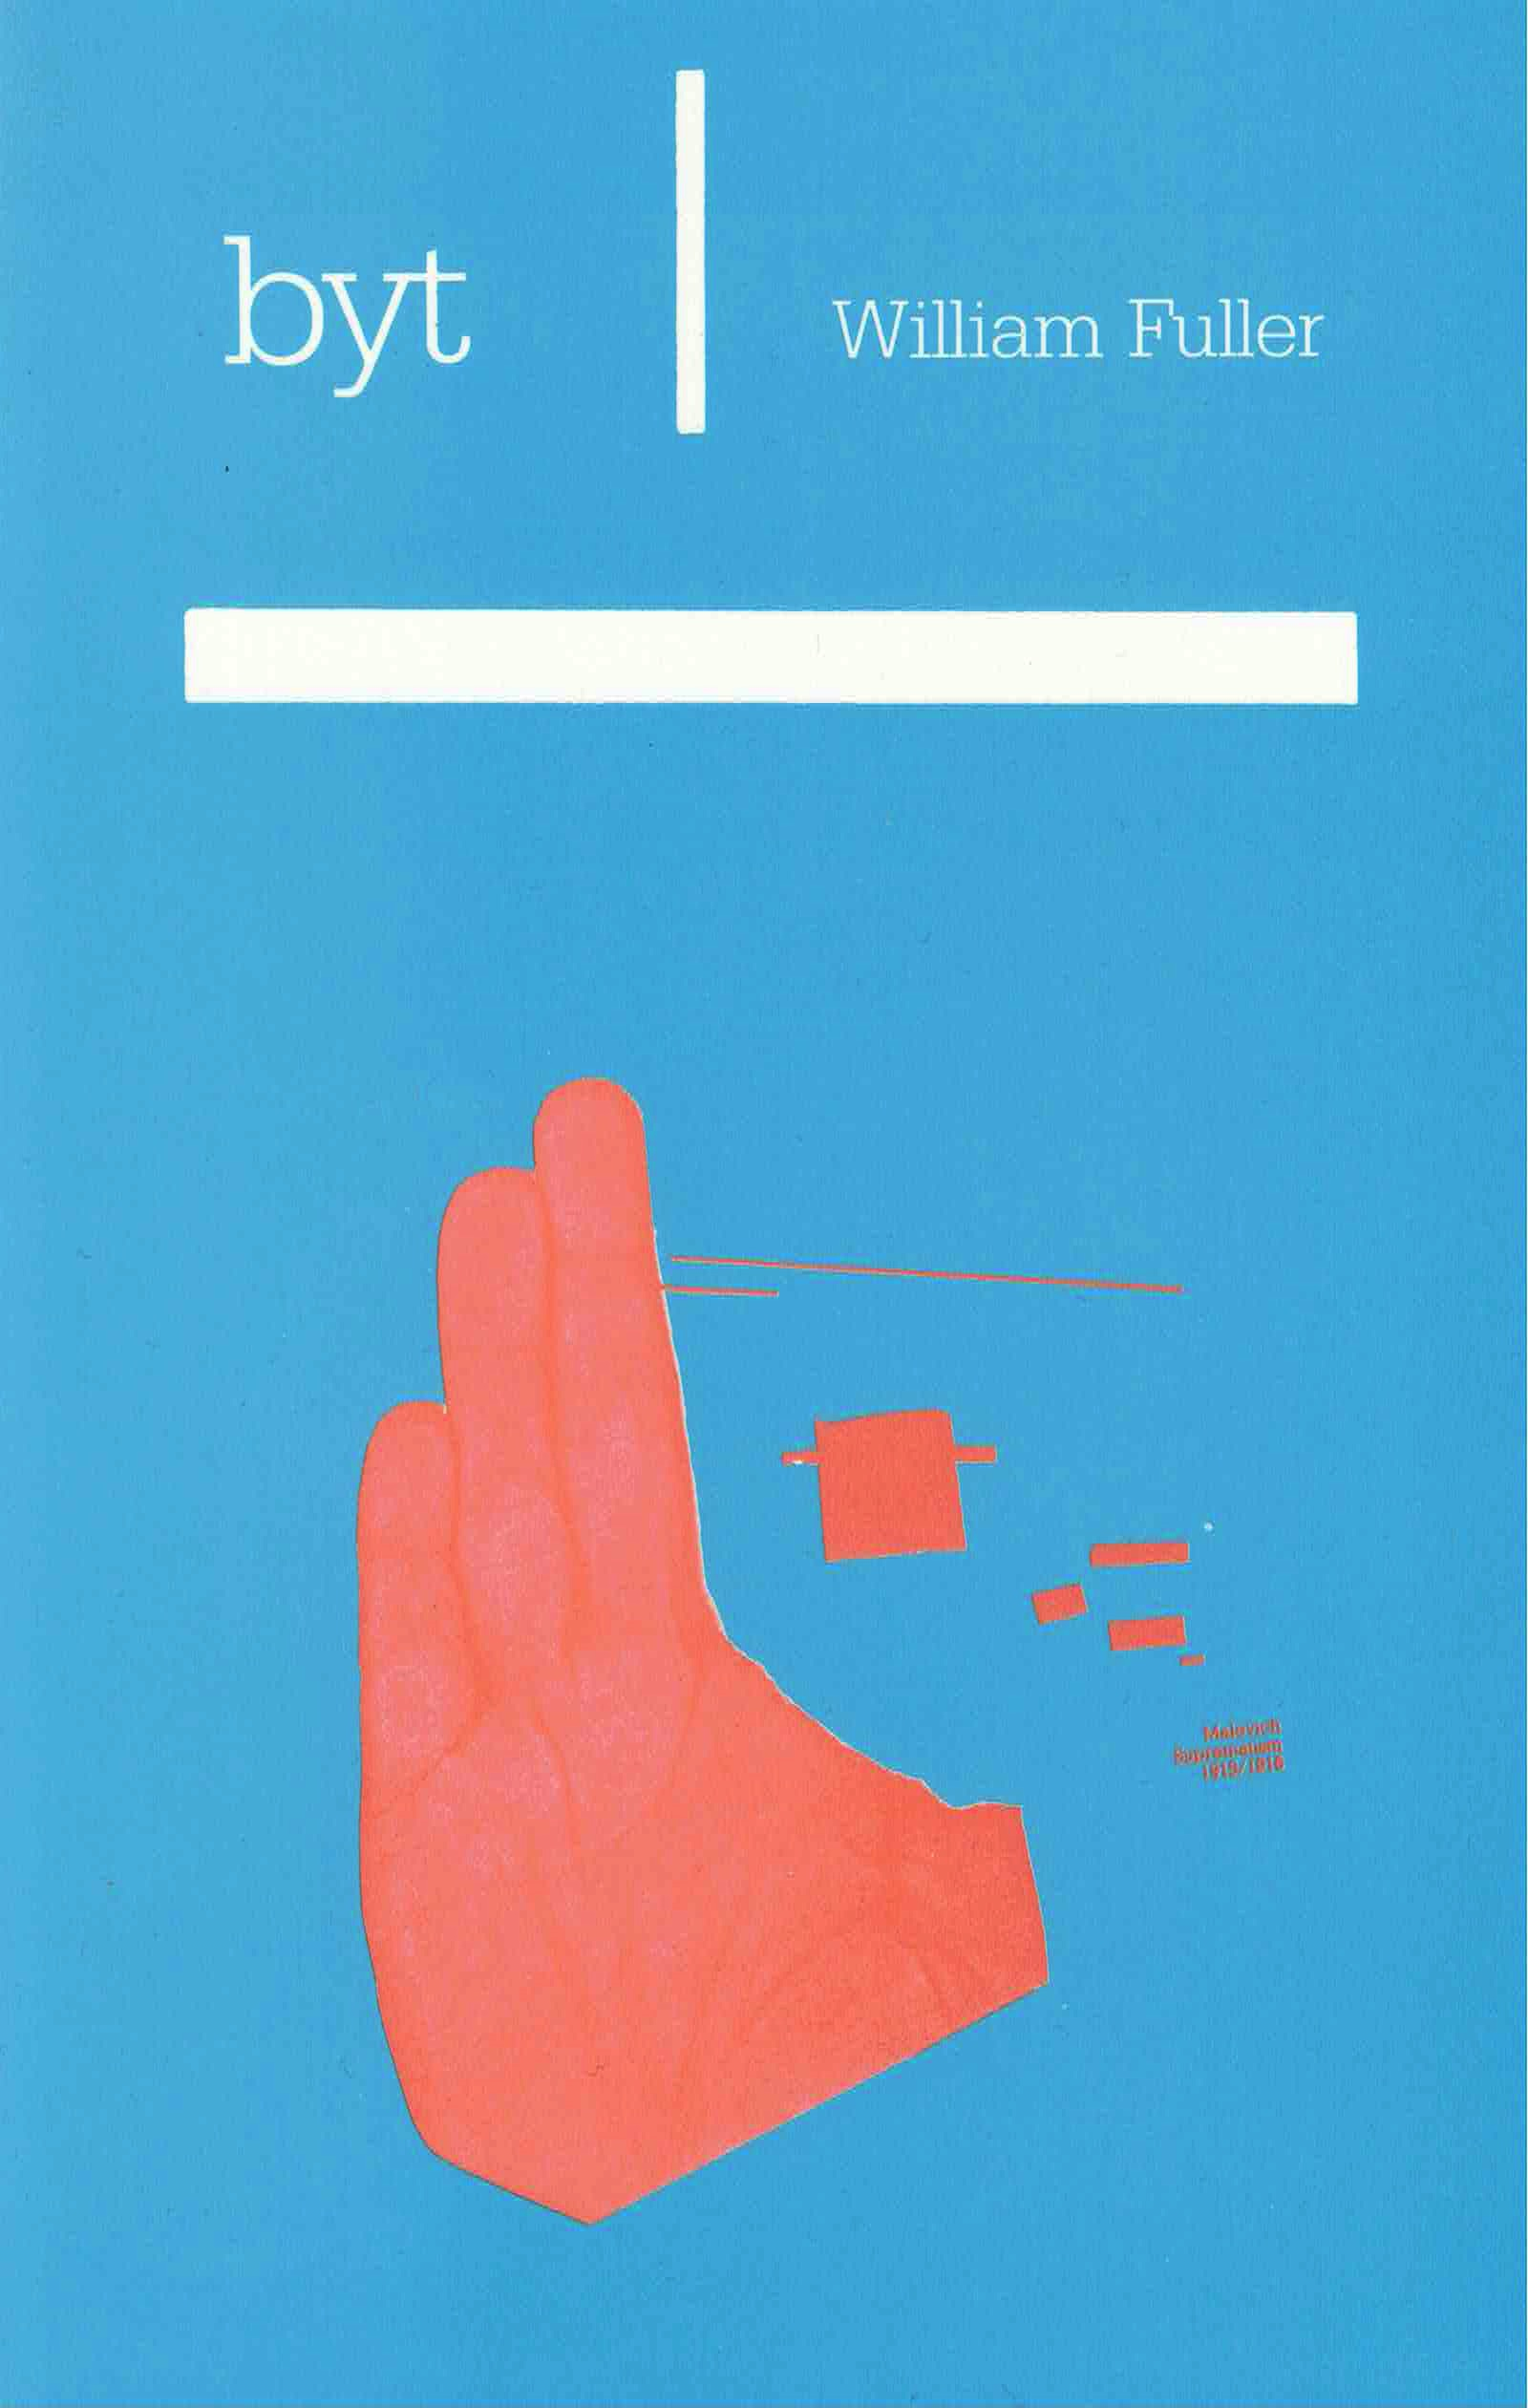 cover of byt by William Fuller; sky blue background, title is left justified at top of page in white typed text, separated with a vertical white line from author name, which is right justified, horizontal thick white line is under the text, a light pink painting of a hand with just the three outer fingers and small rectangular shapes where the index and thumb digits should be